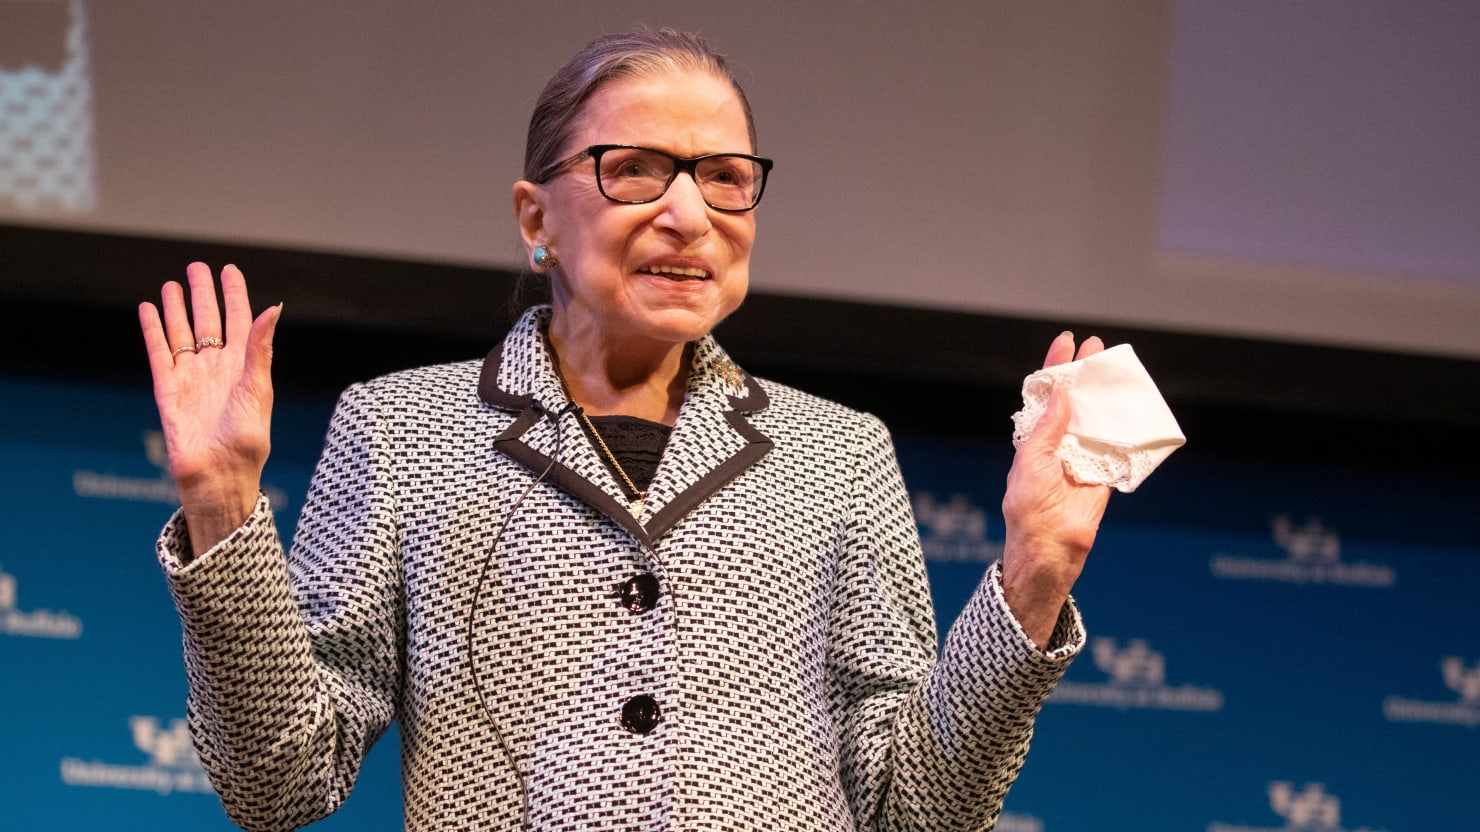 Supreme Court Justice Ruth Bader Ginsburg Won't Give Up Working Out with Trainer Despite Coronavirus Fears